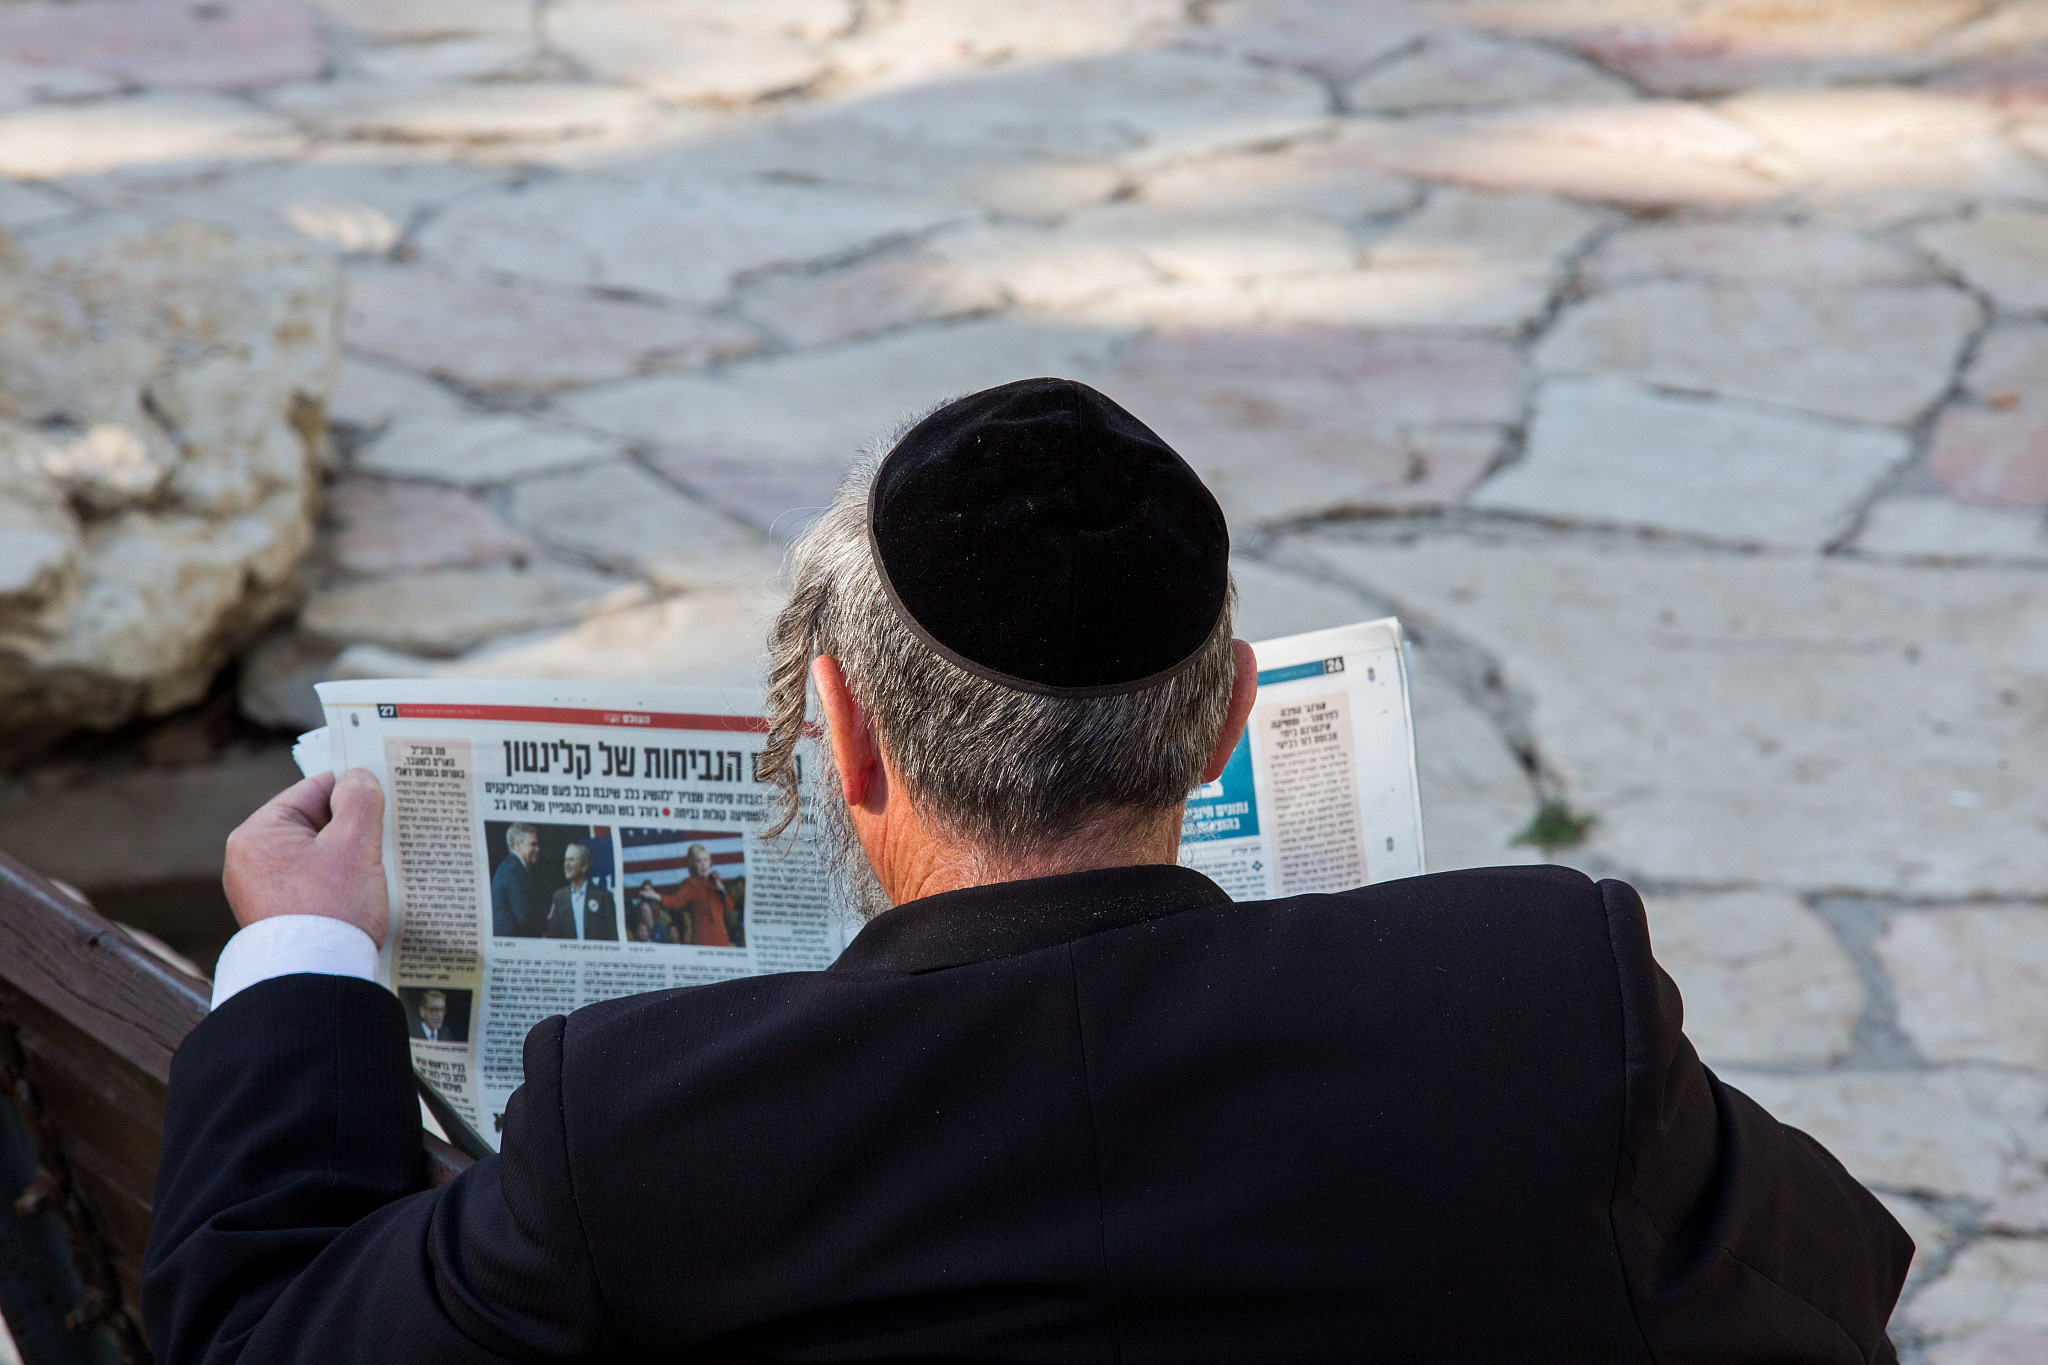 An ultra-Orthodox Jewish man reads the Israel Hayom newspaper in Jerusalem, February 17, 2016. (Nati Shohat/Flash90)